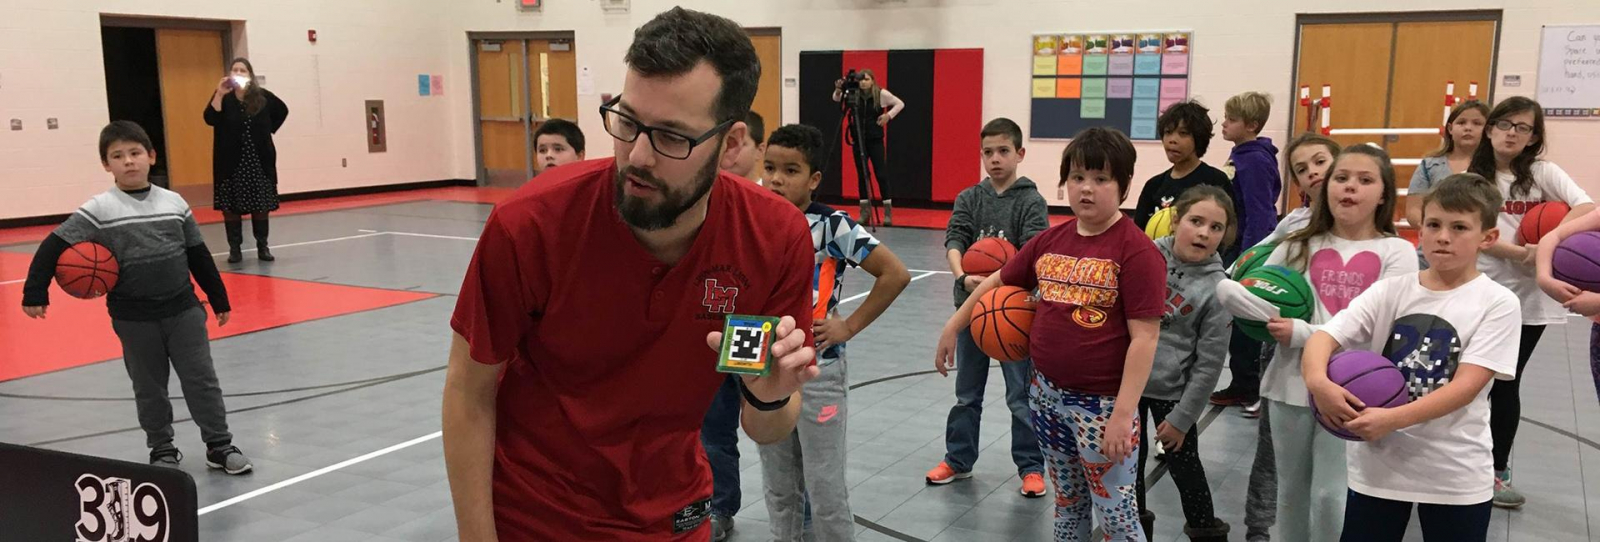 Tanner Roos using a computer with students in physical education class